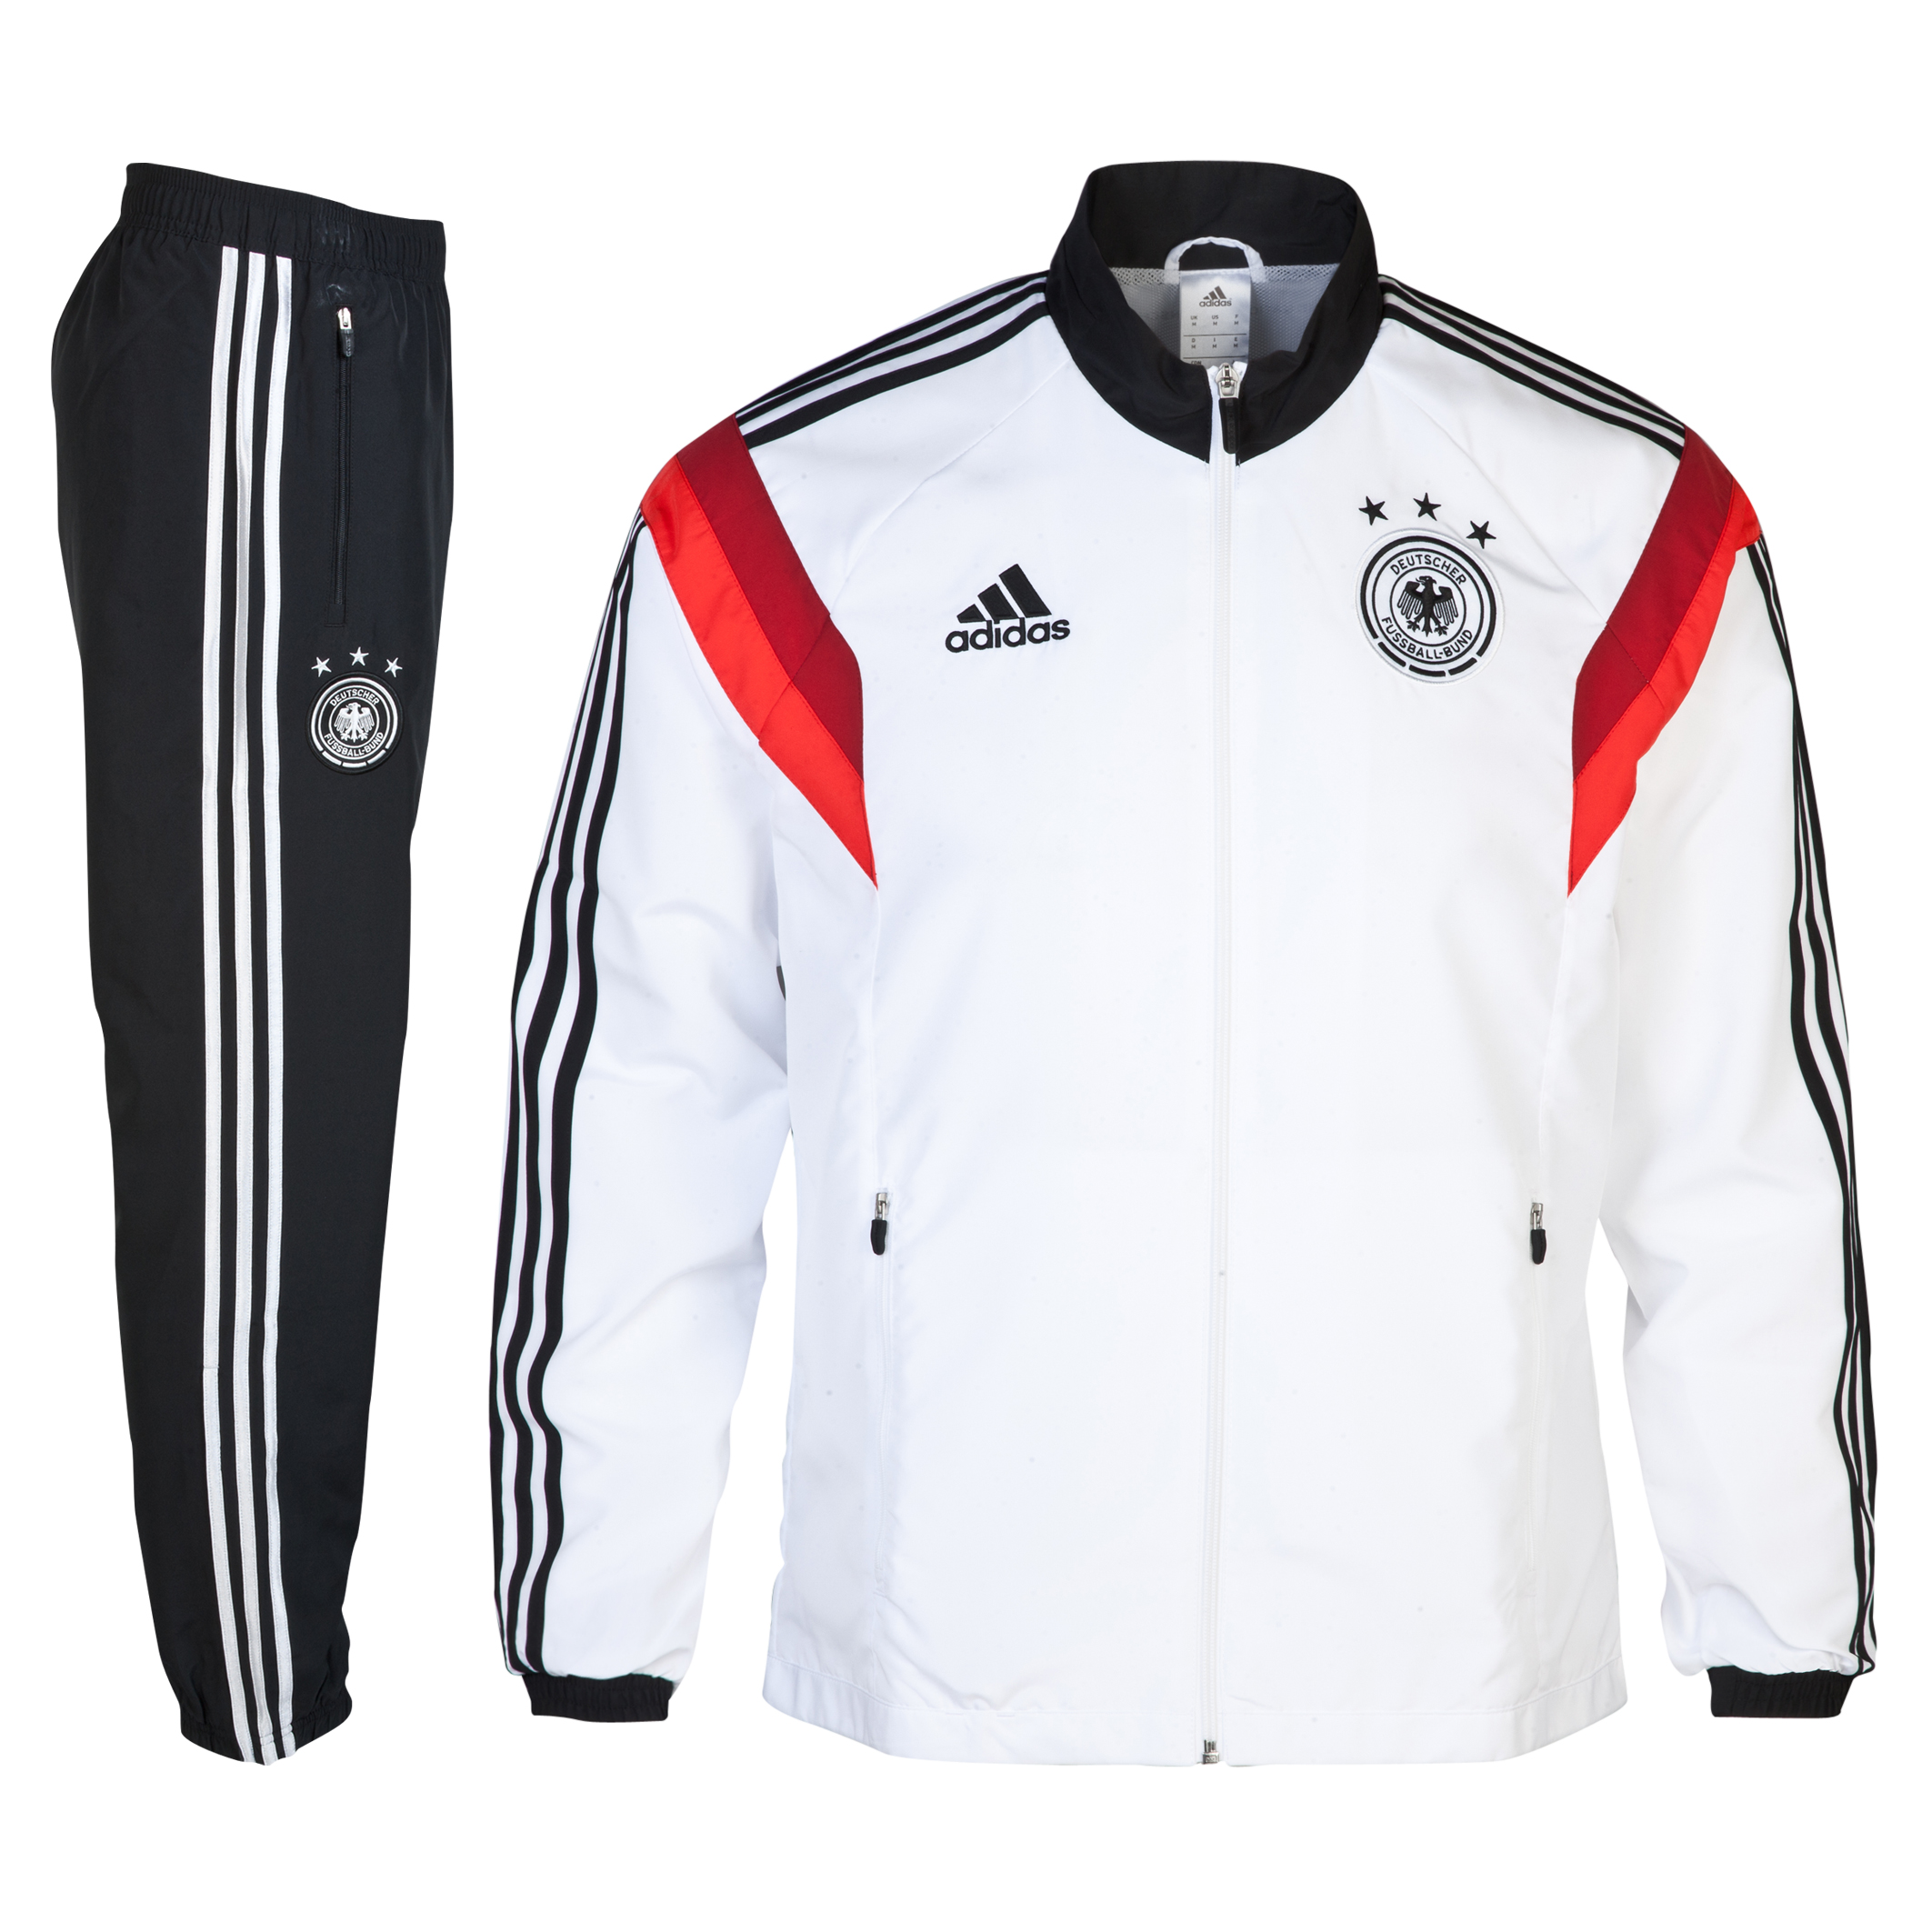 Germany Presentation Suit - White/Black